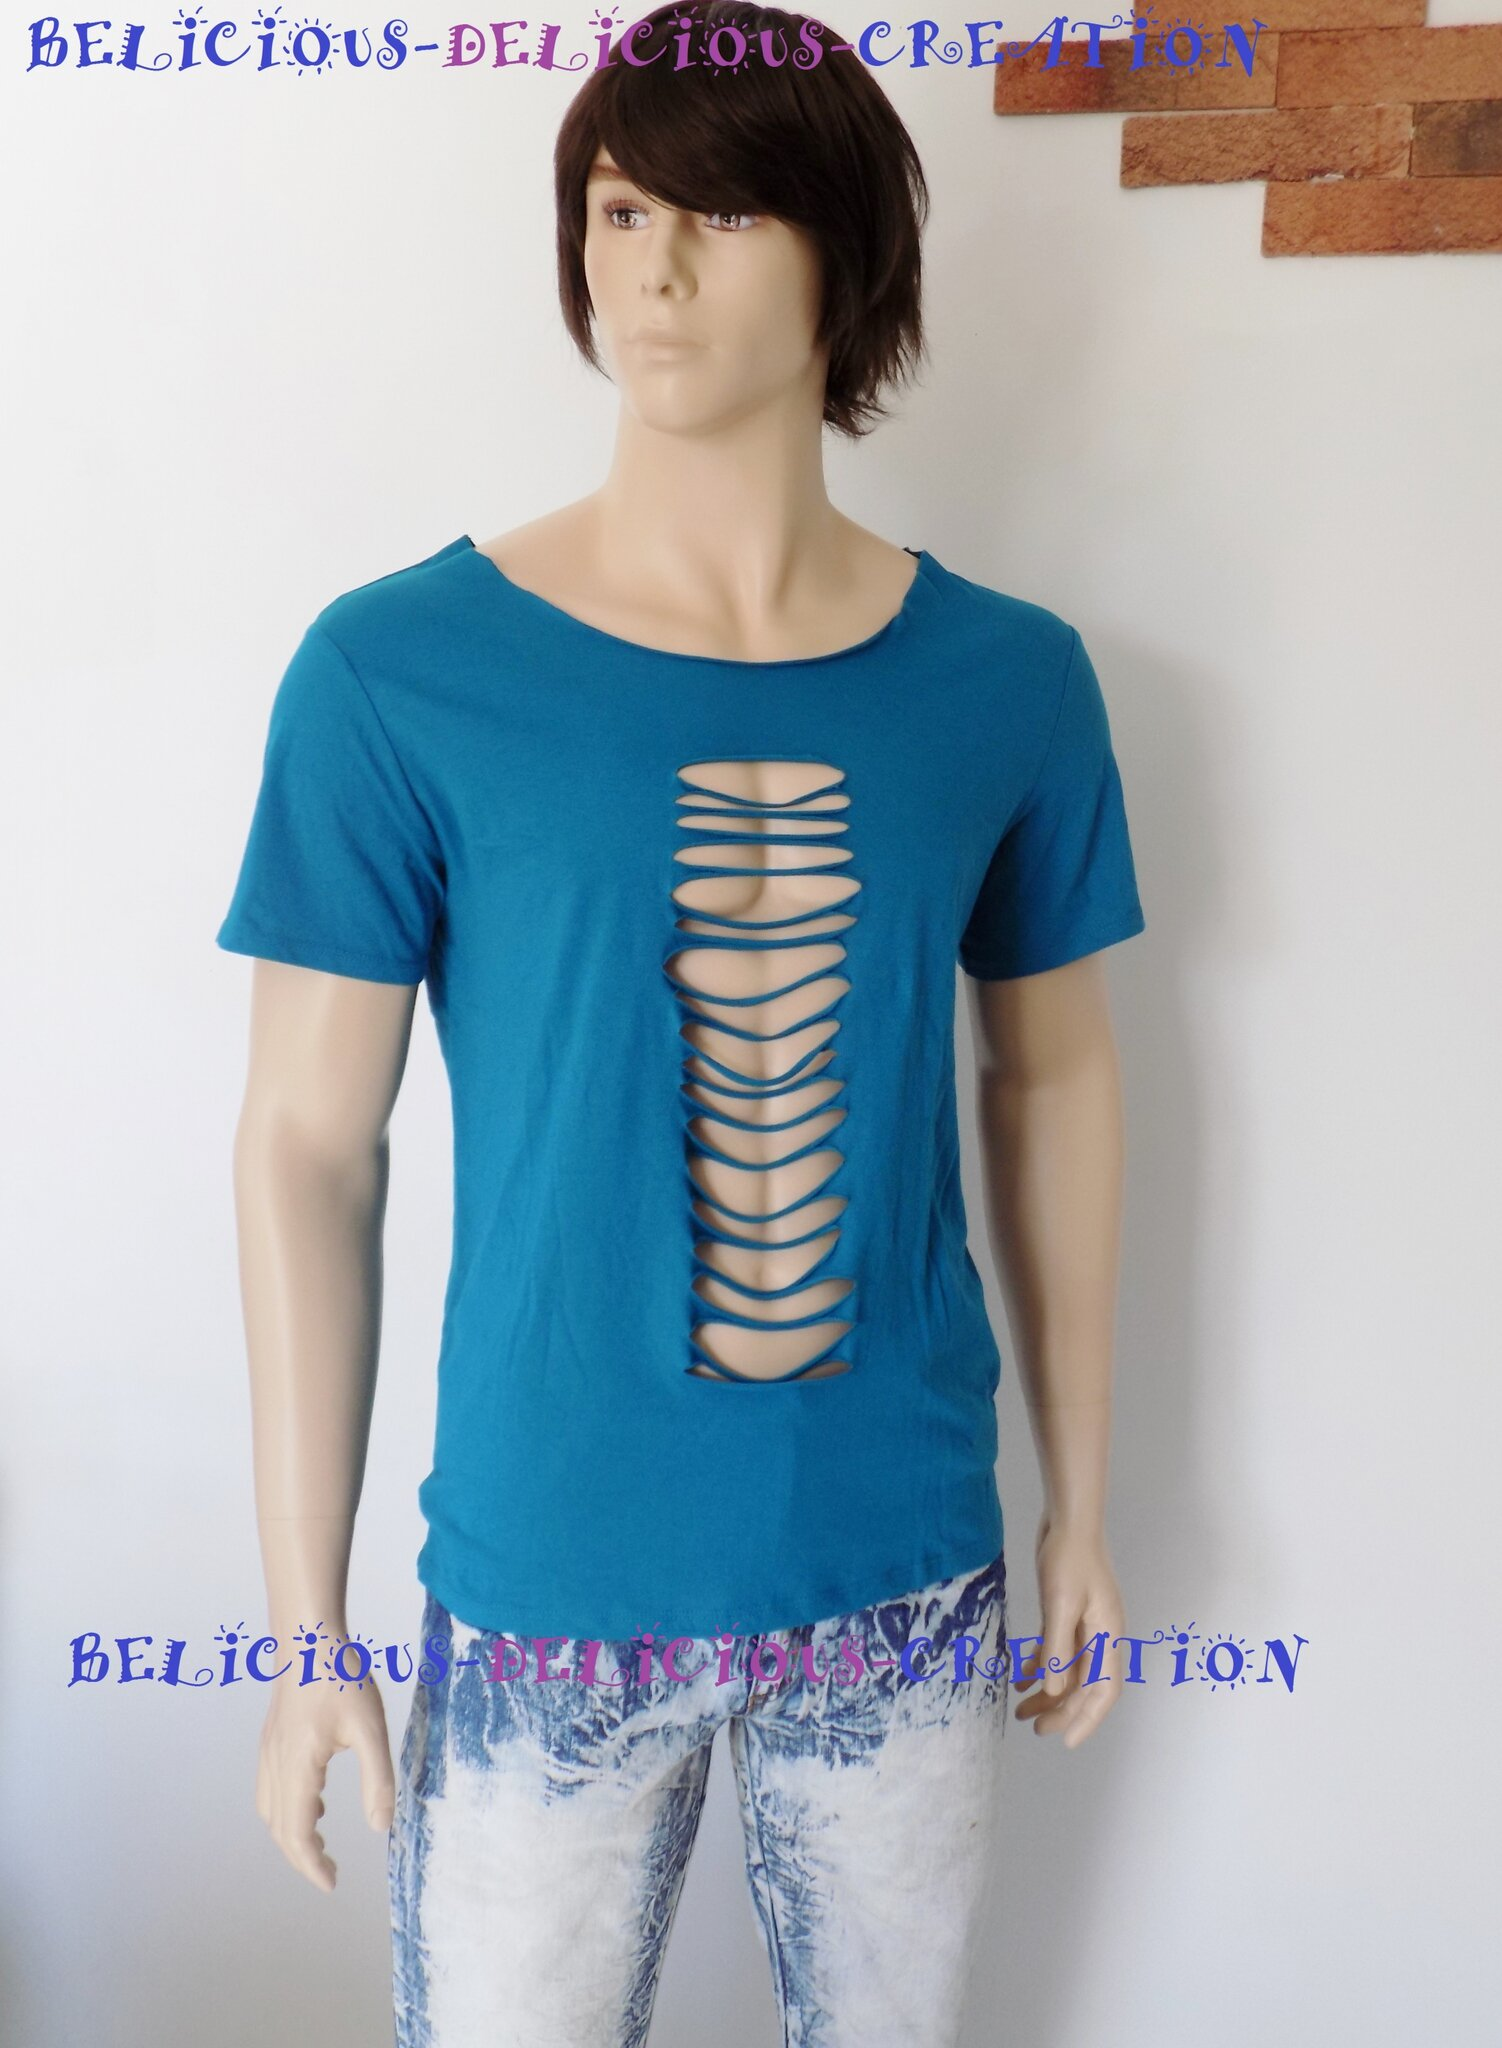 t-shirt for men blue slashed